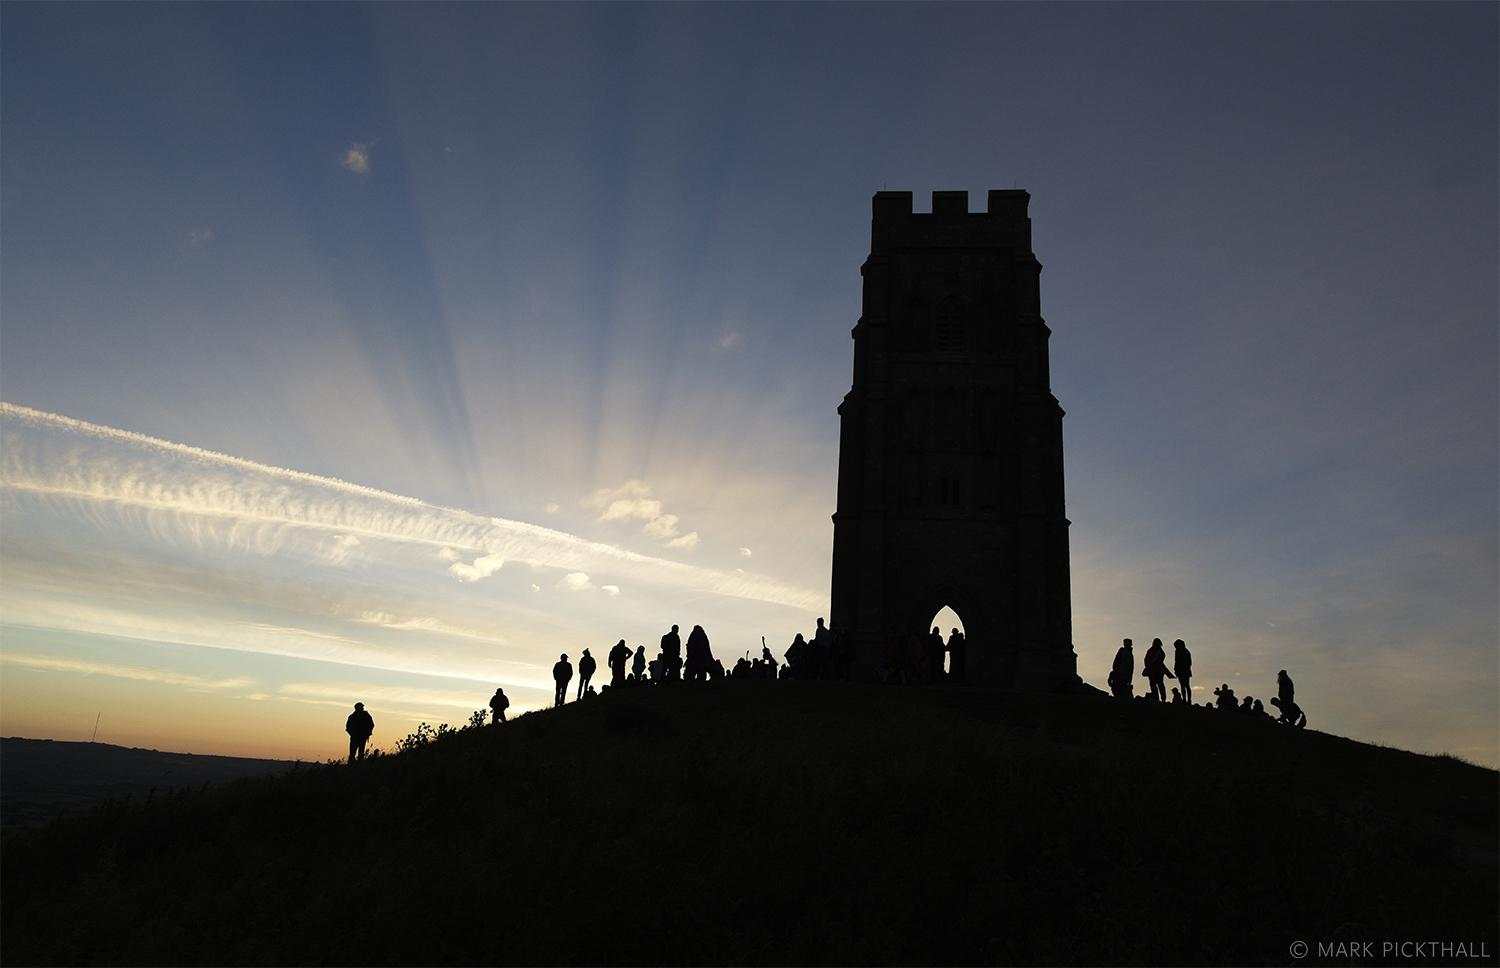 Summer Solstice Glastonbury Tor mythogogy